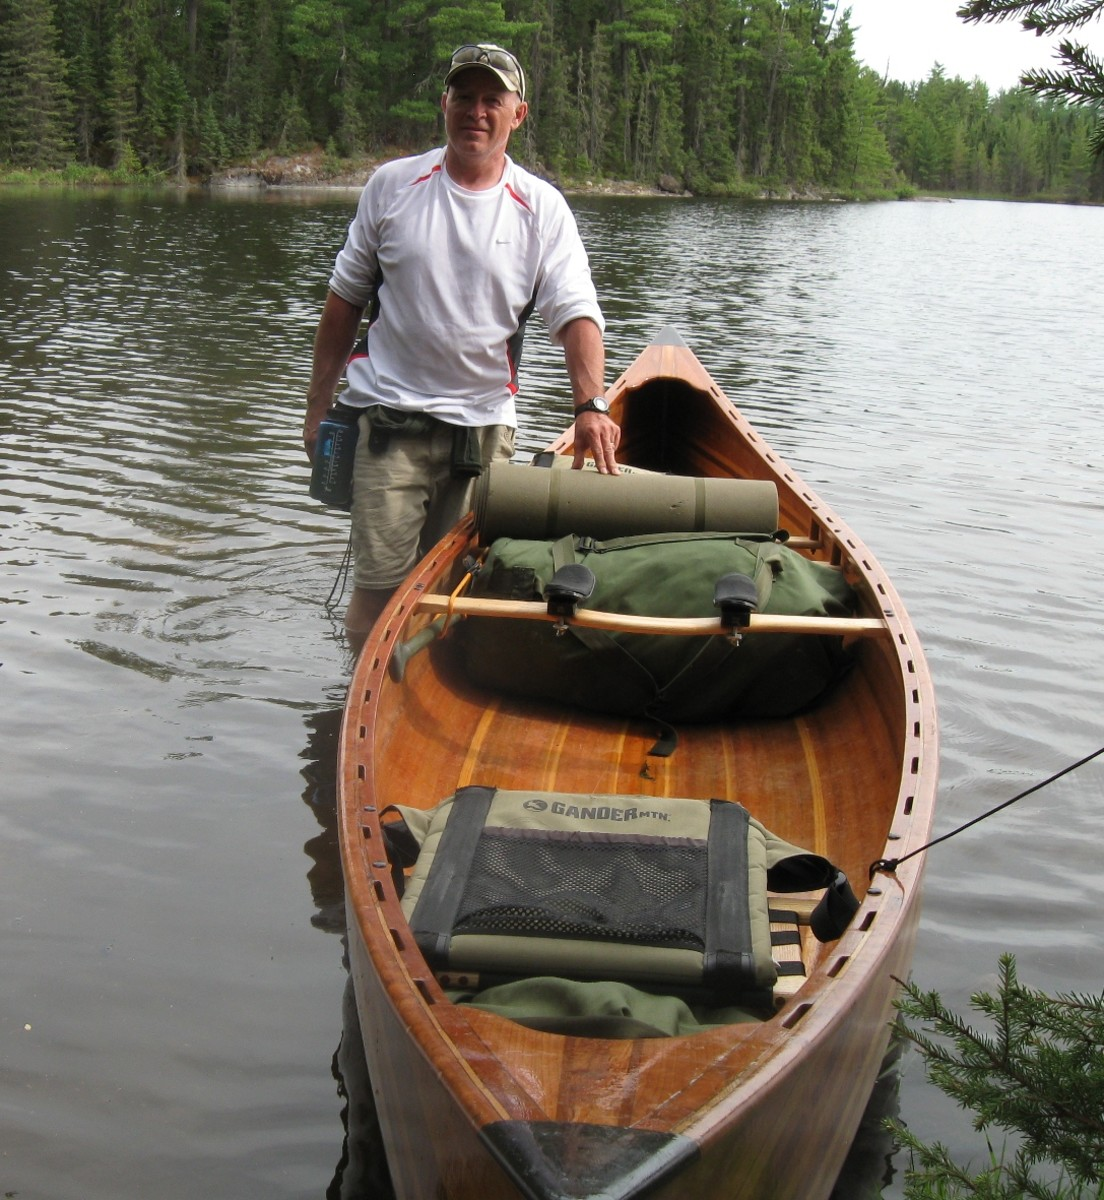 Cedar-strip canoe at a portage